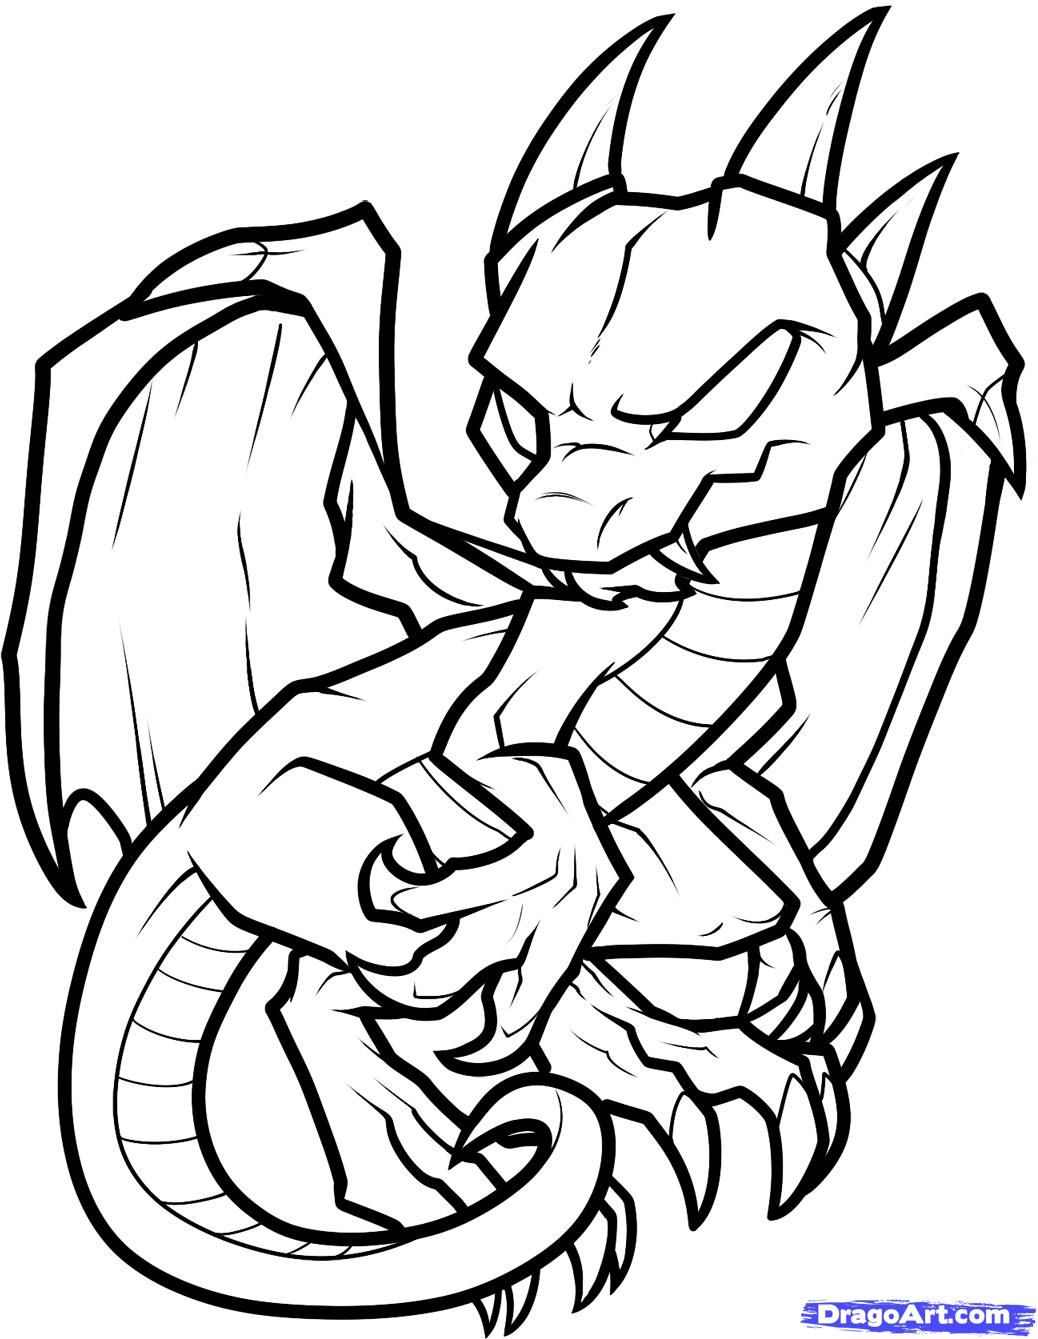 Dragon Coloring Pages How to Draw an Anthro Baby Dragon